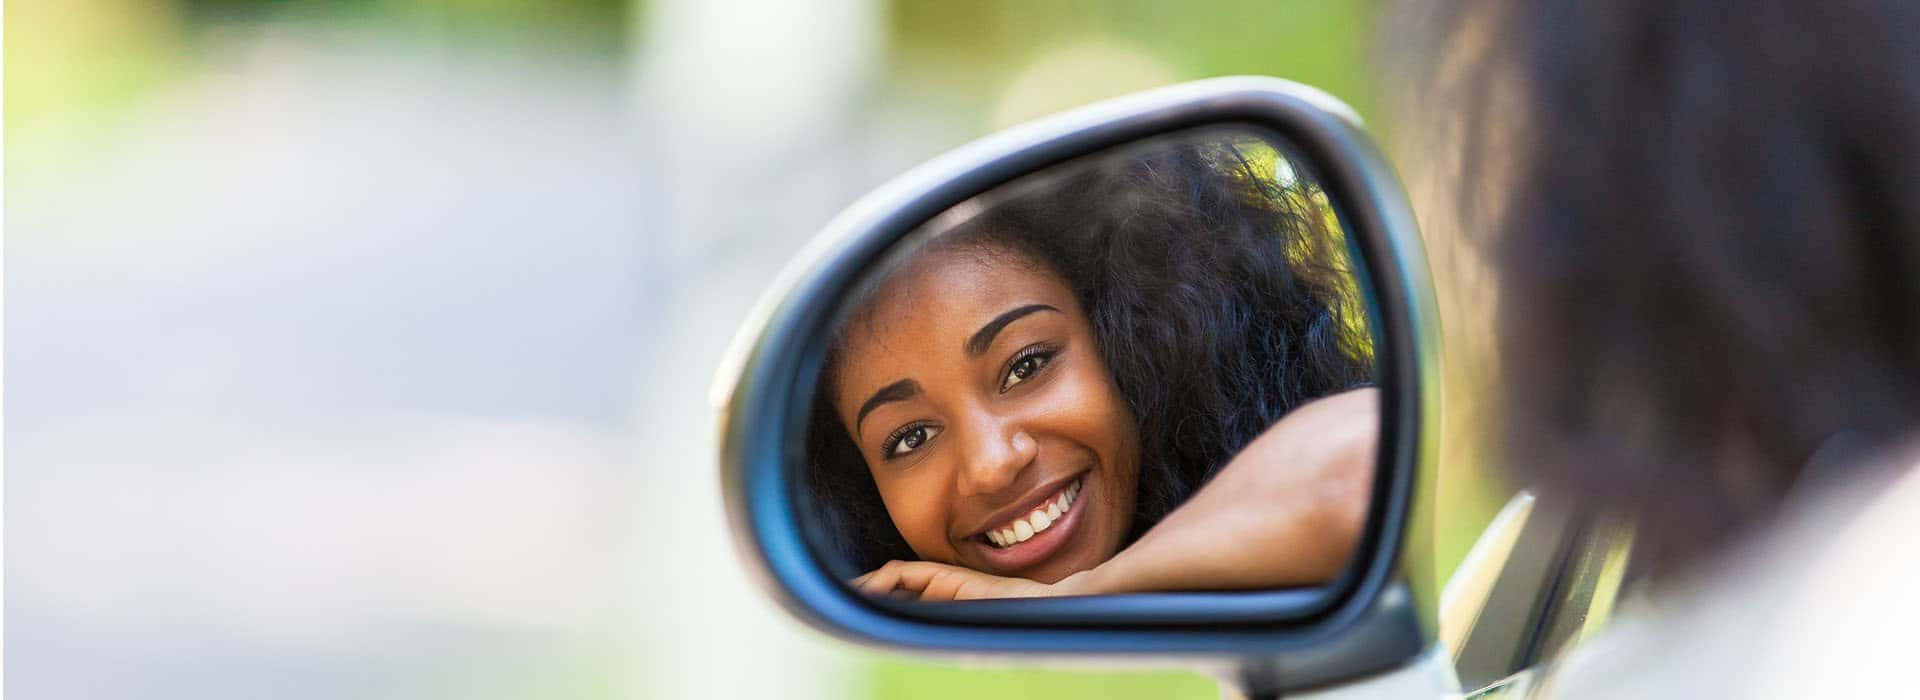 Zimnat young lady looking in rearview mirror